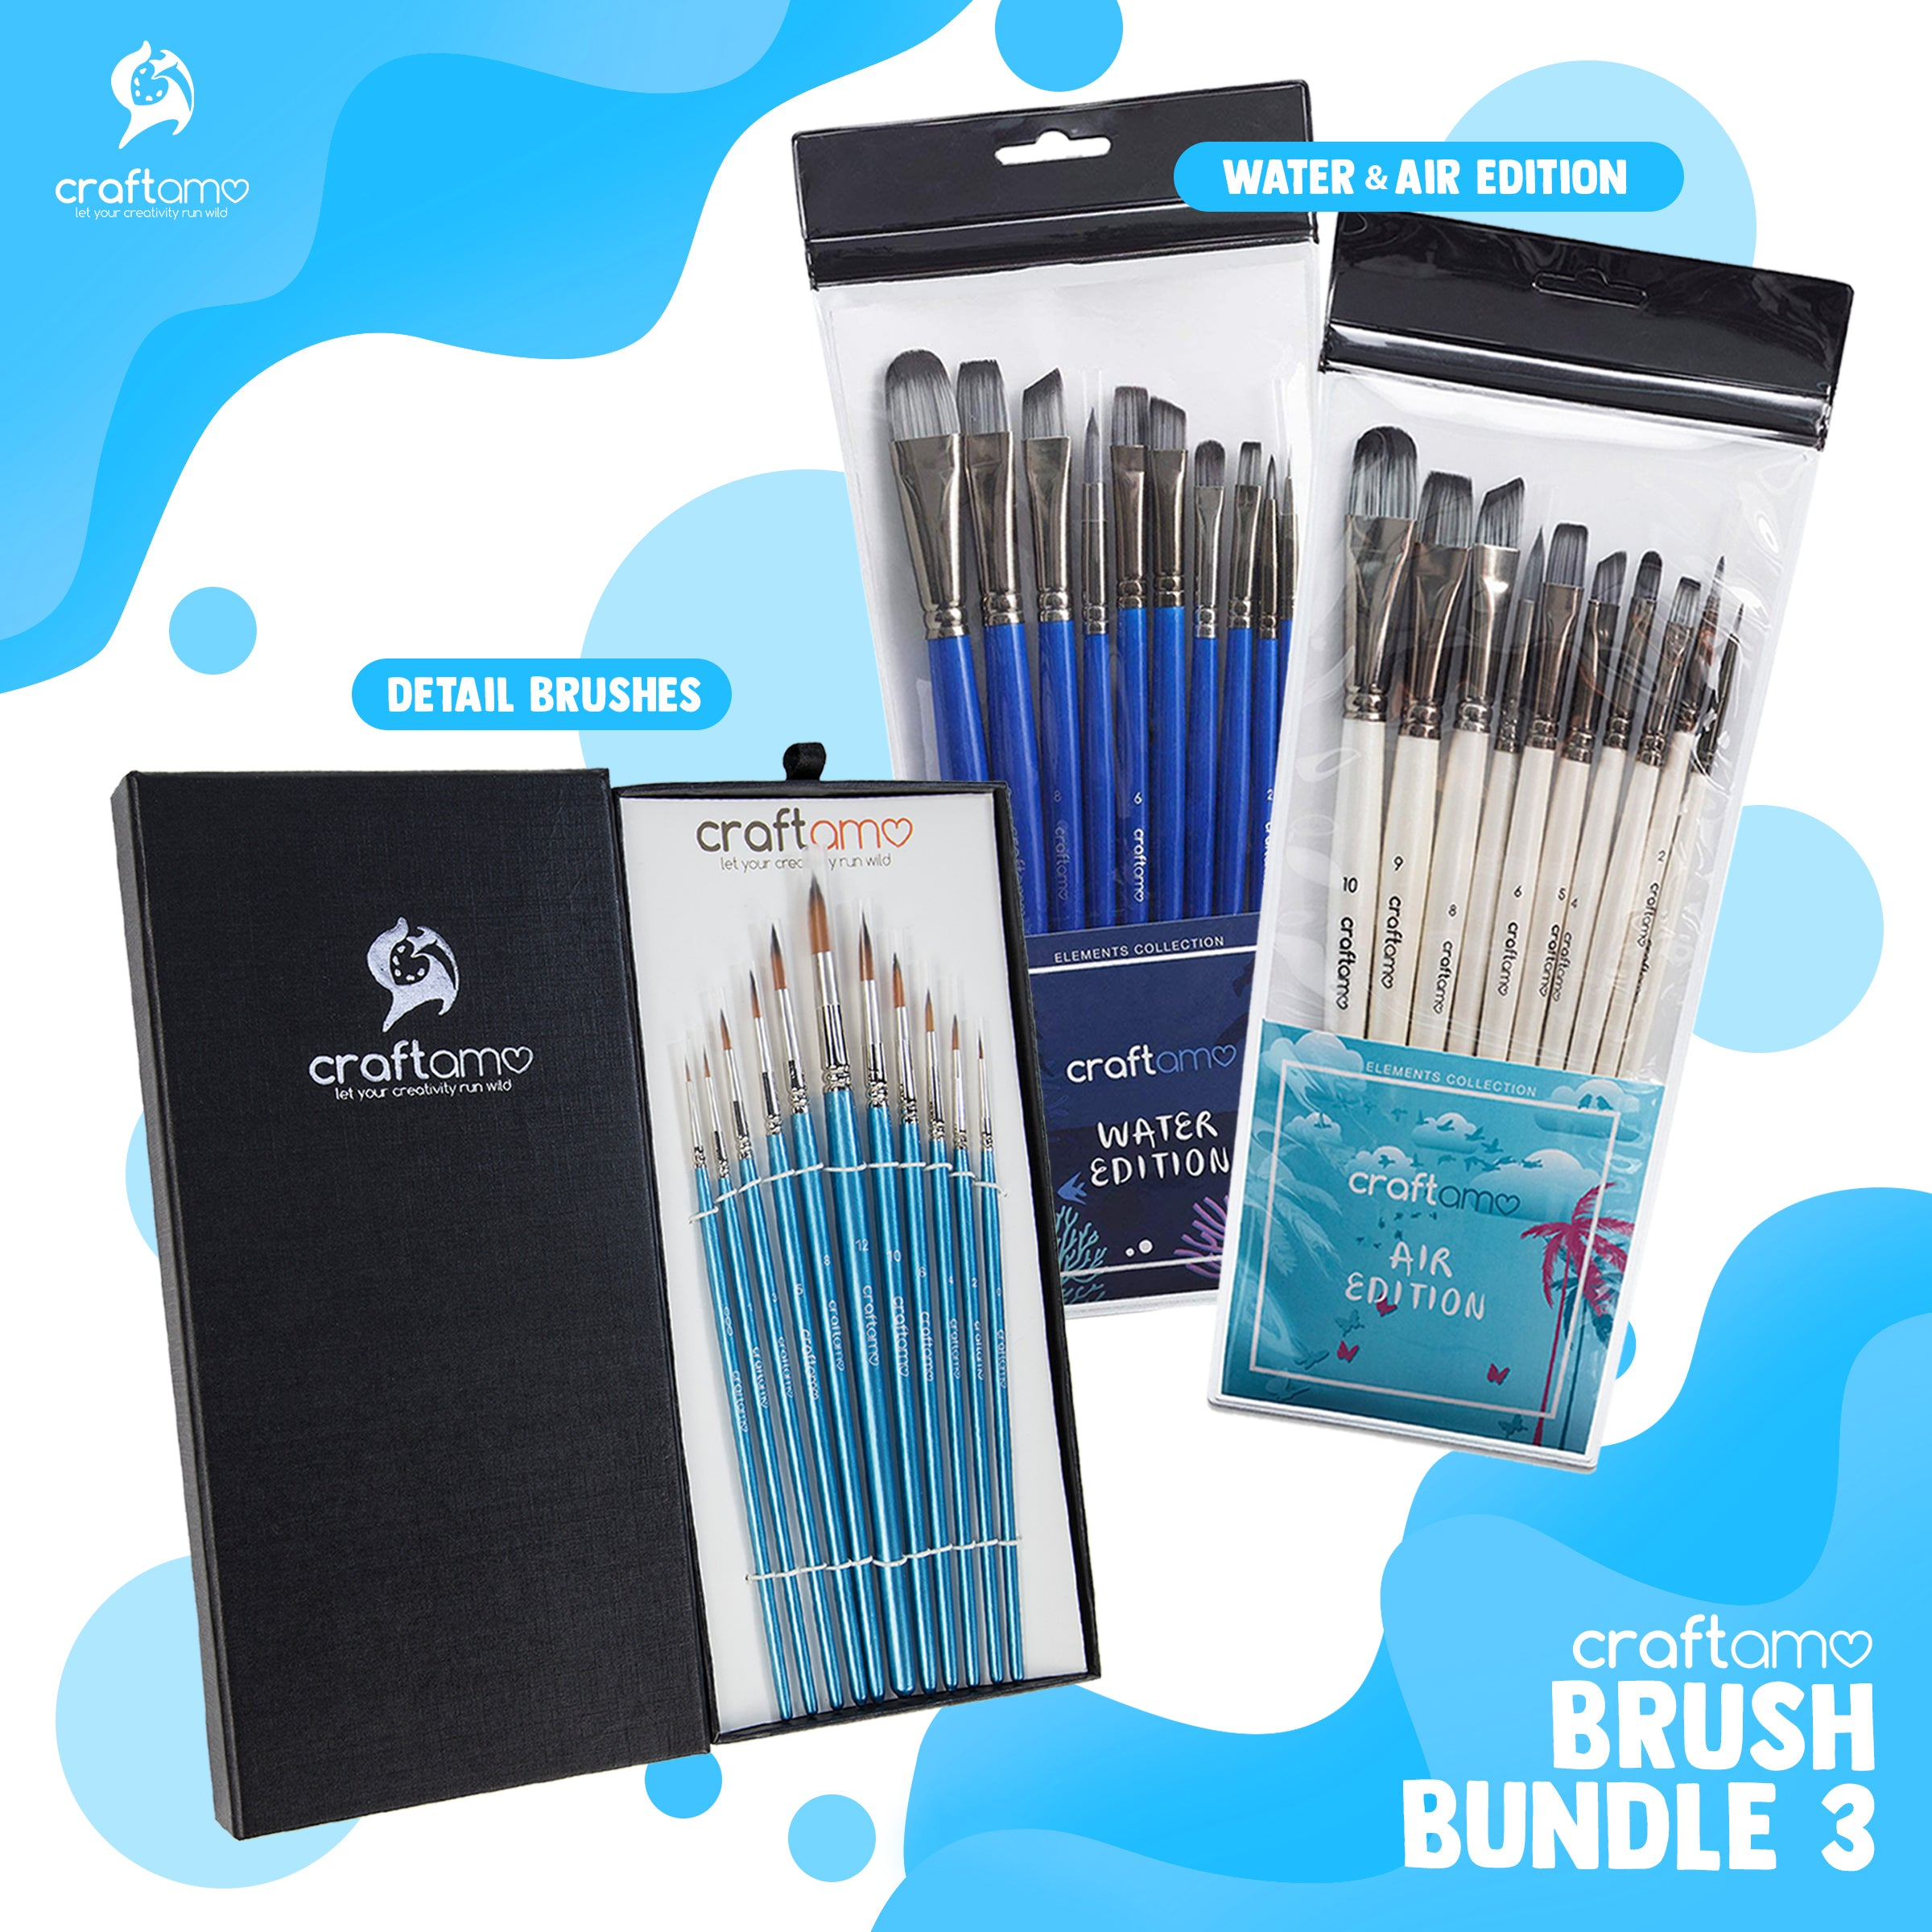 BRUSH BUNDLE 3